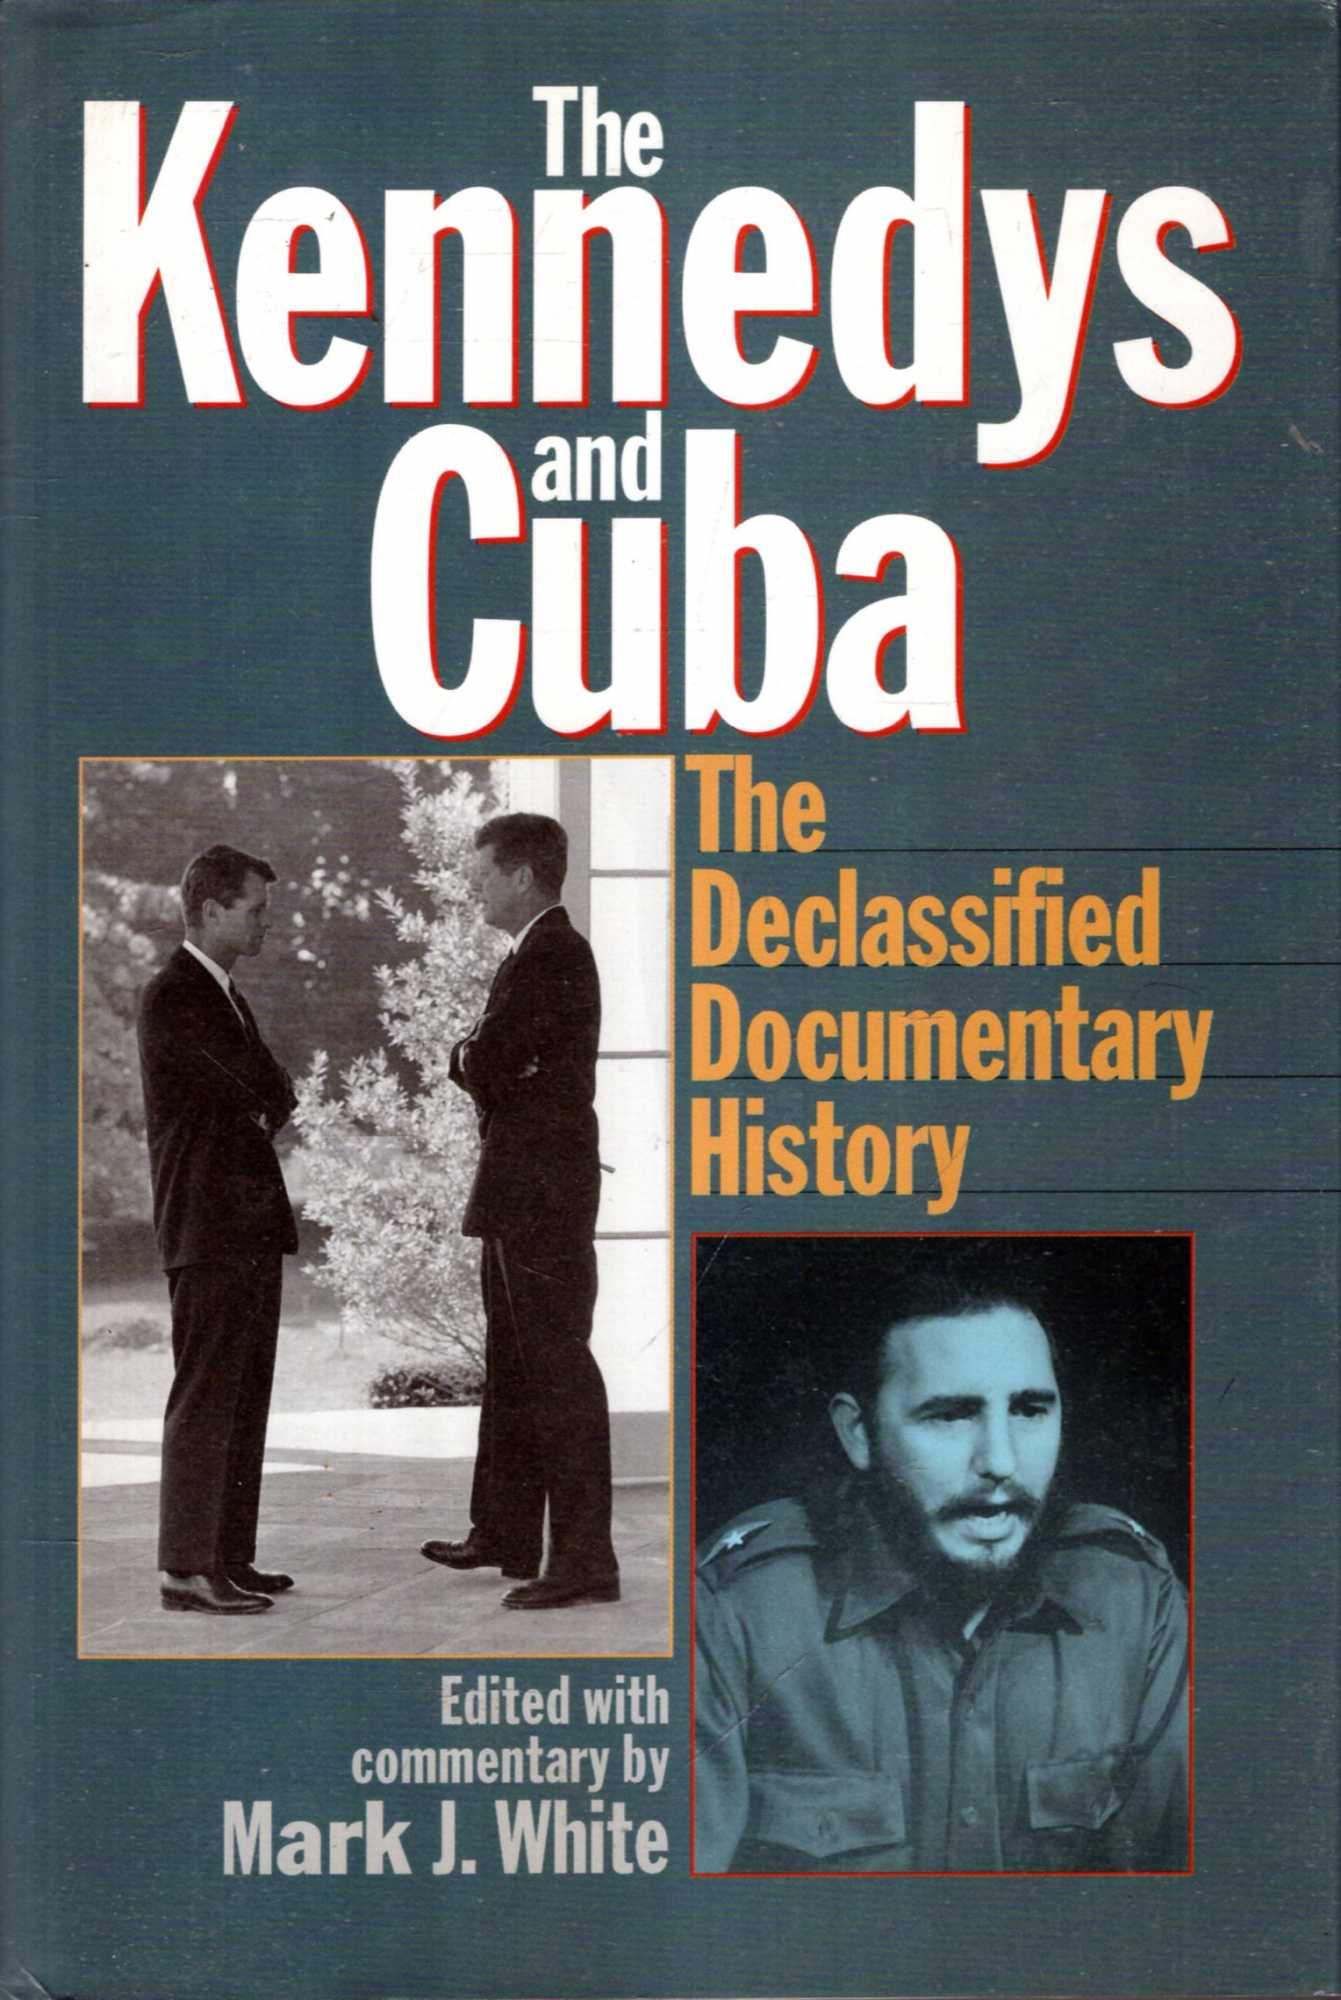 Image for The Kennedys and Cuba: The Declassified Documentary History